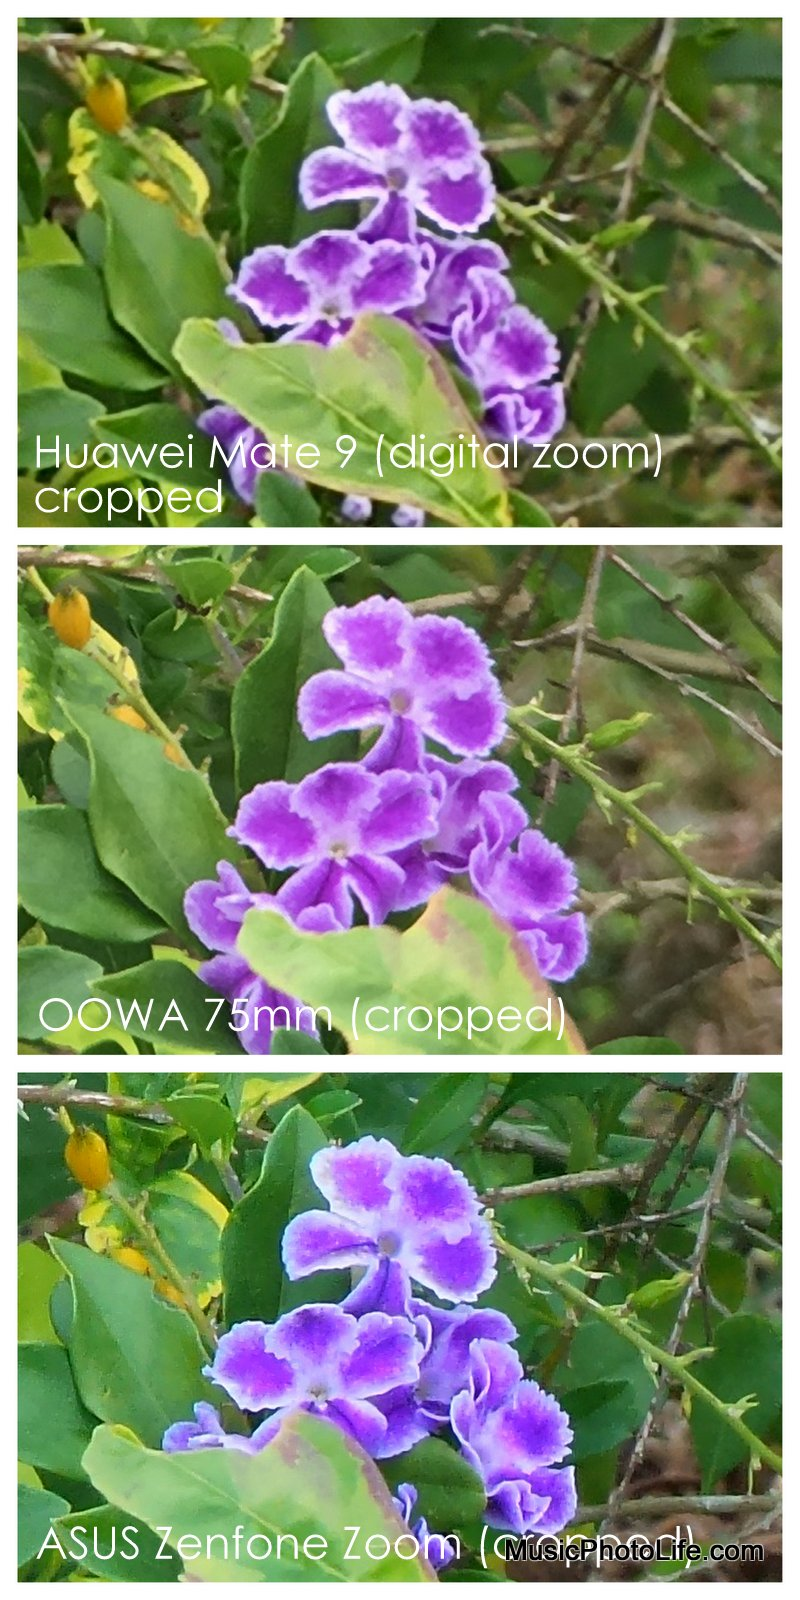 OOWA 75mm, Huawei Mate9, ASUS Zenfone Zoom comparison cropped